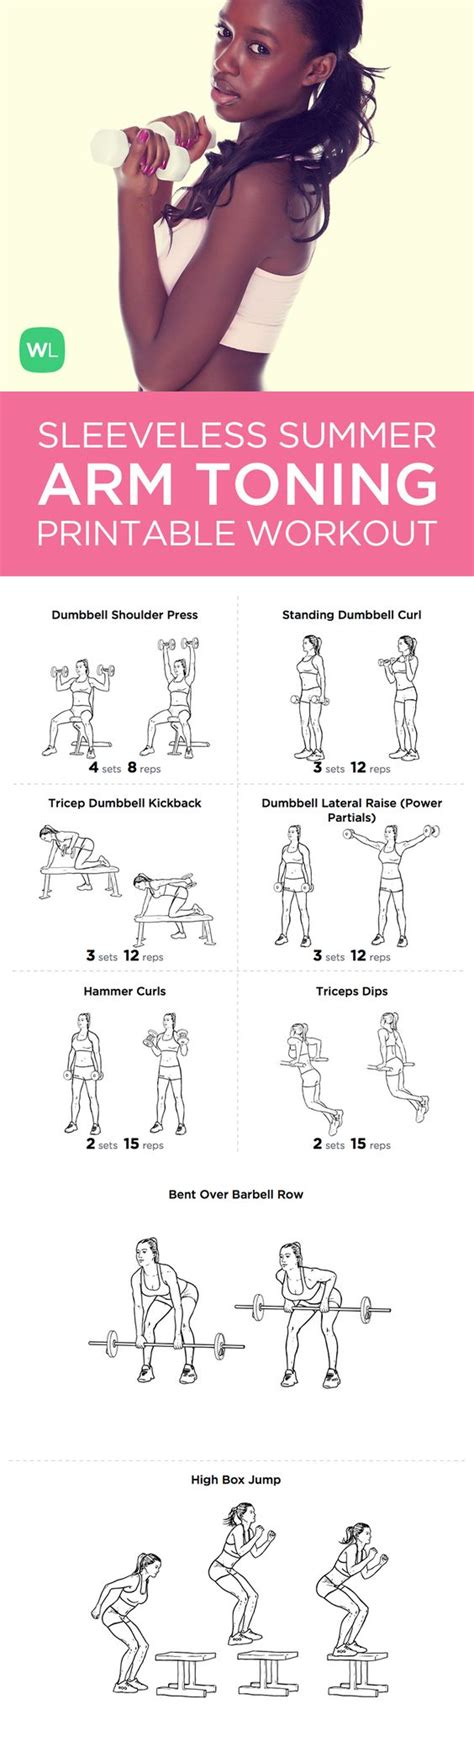 printable exercise workouts 15 minute summer sleeveless arms toning printable workout